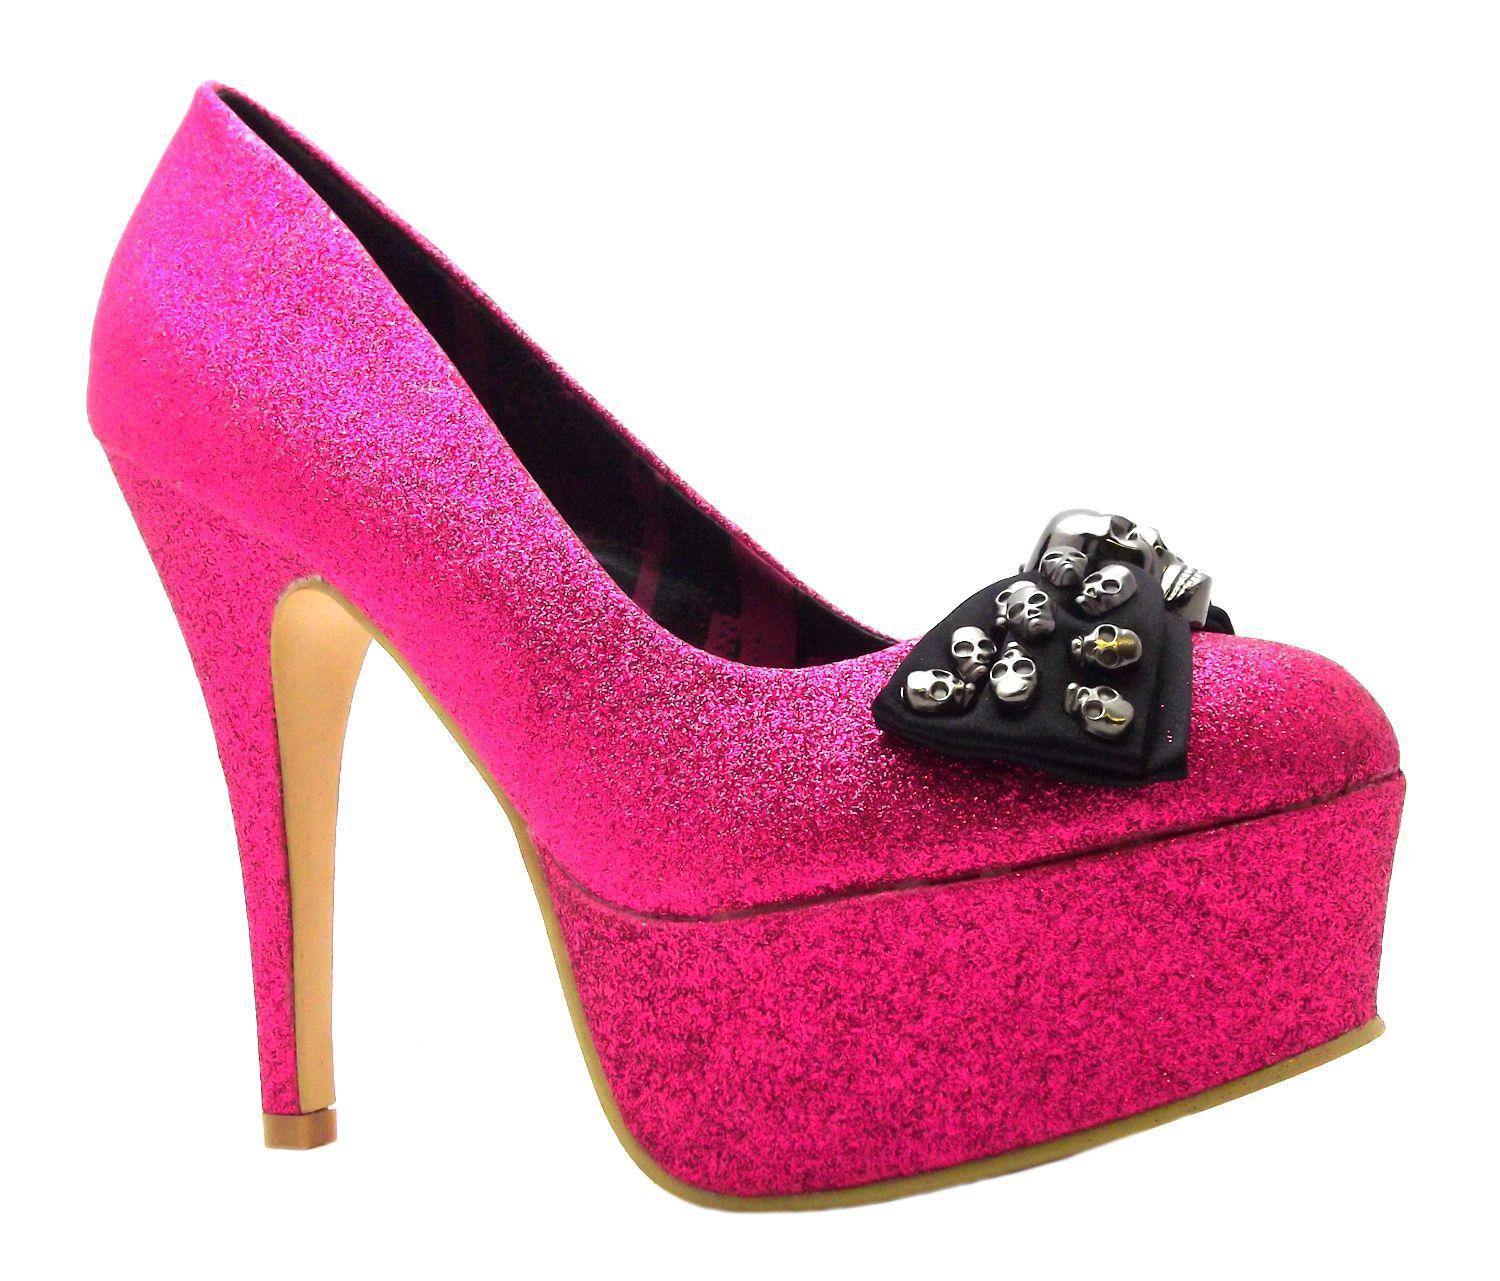 Cute and Stylish Pink High Heels for Girls